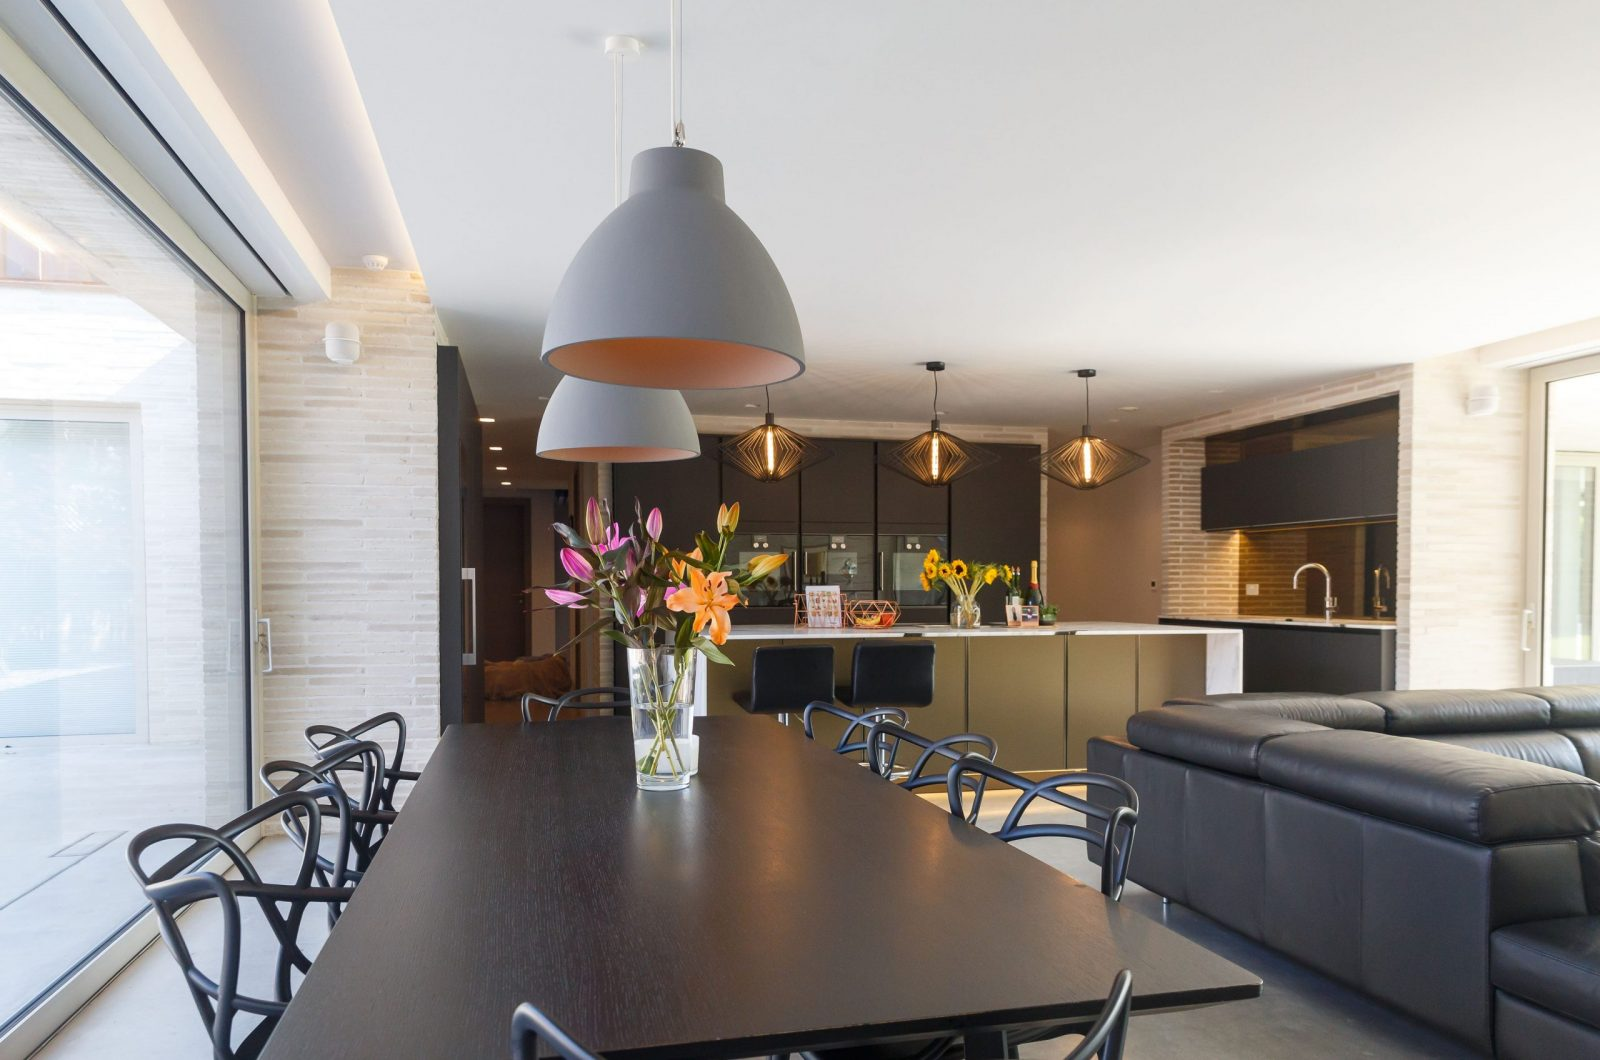 Studio Spicer Project open plan kitchen overlooking the 8 seater dining table onto the breakfast bar